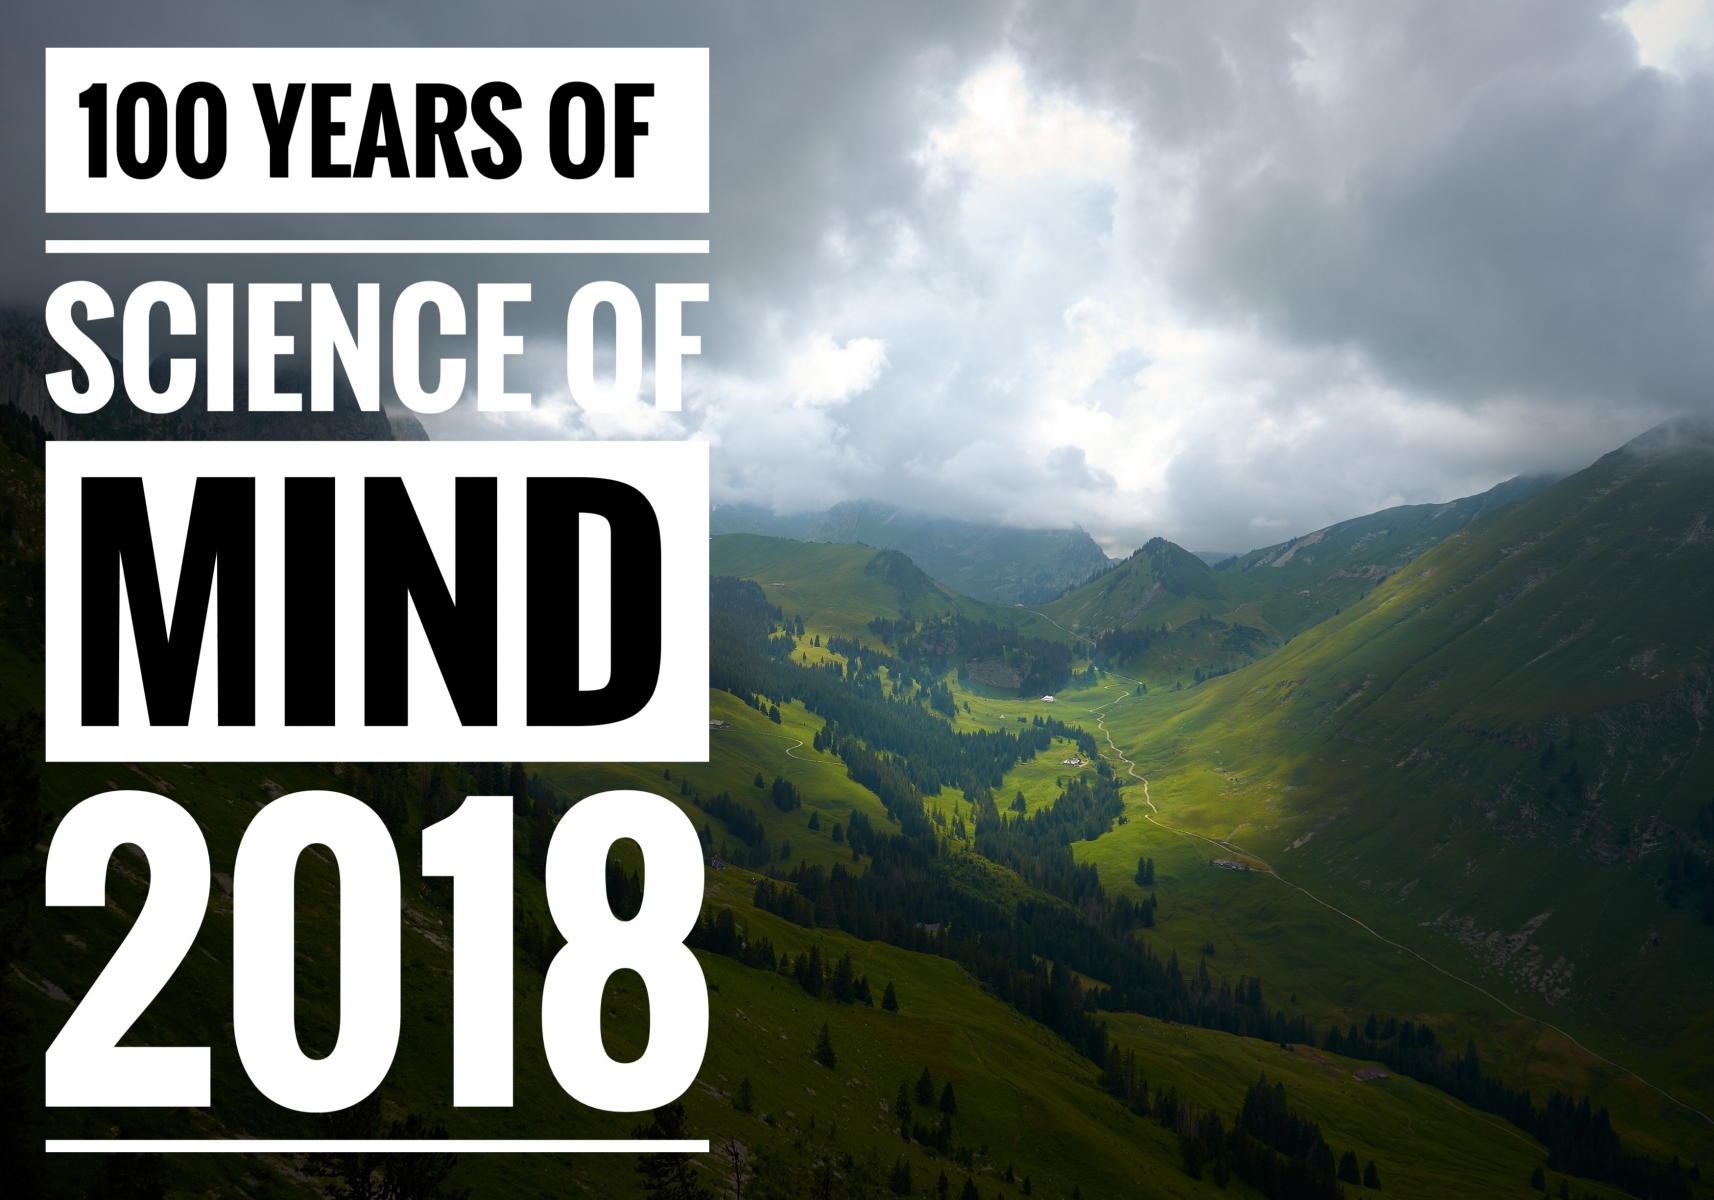 100_Years_of_Science_of_Mind_2018